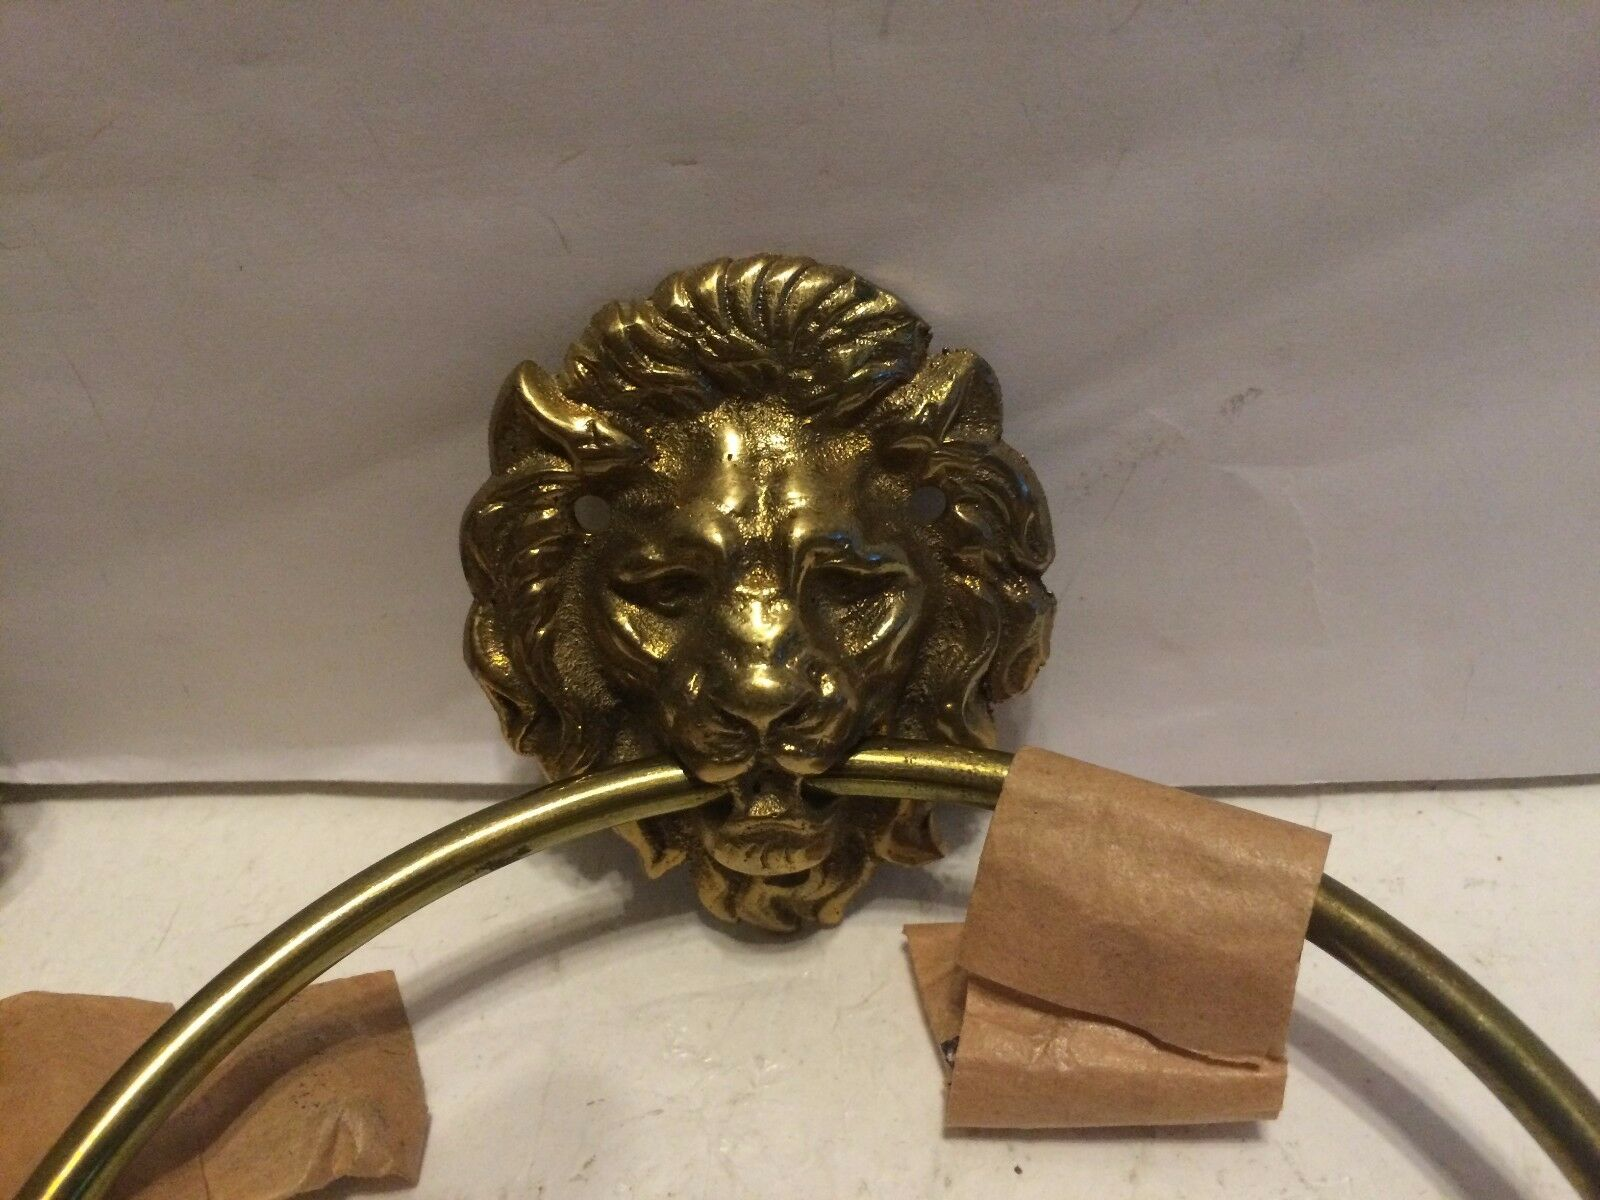 3 Antique LION DOOR KNOCKERS. MADE IN JAPAN Nice patina and condition